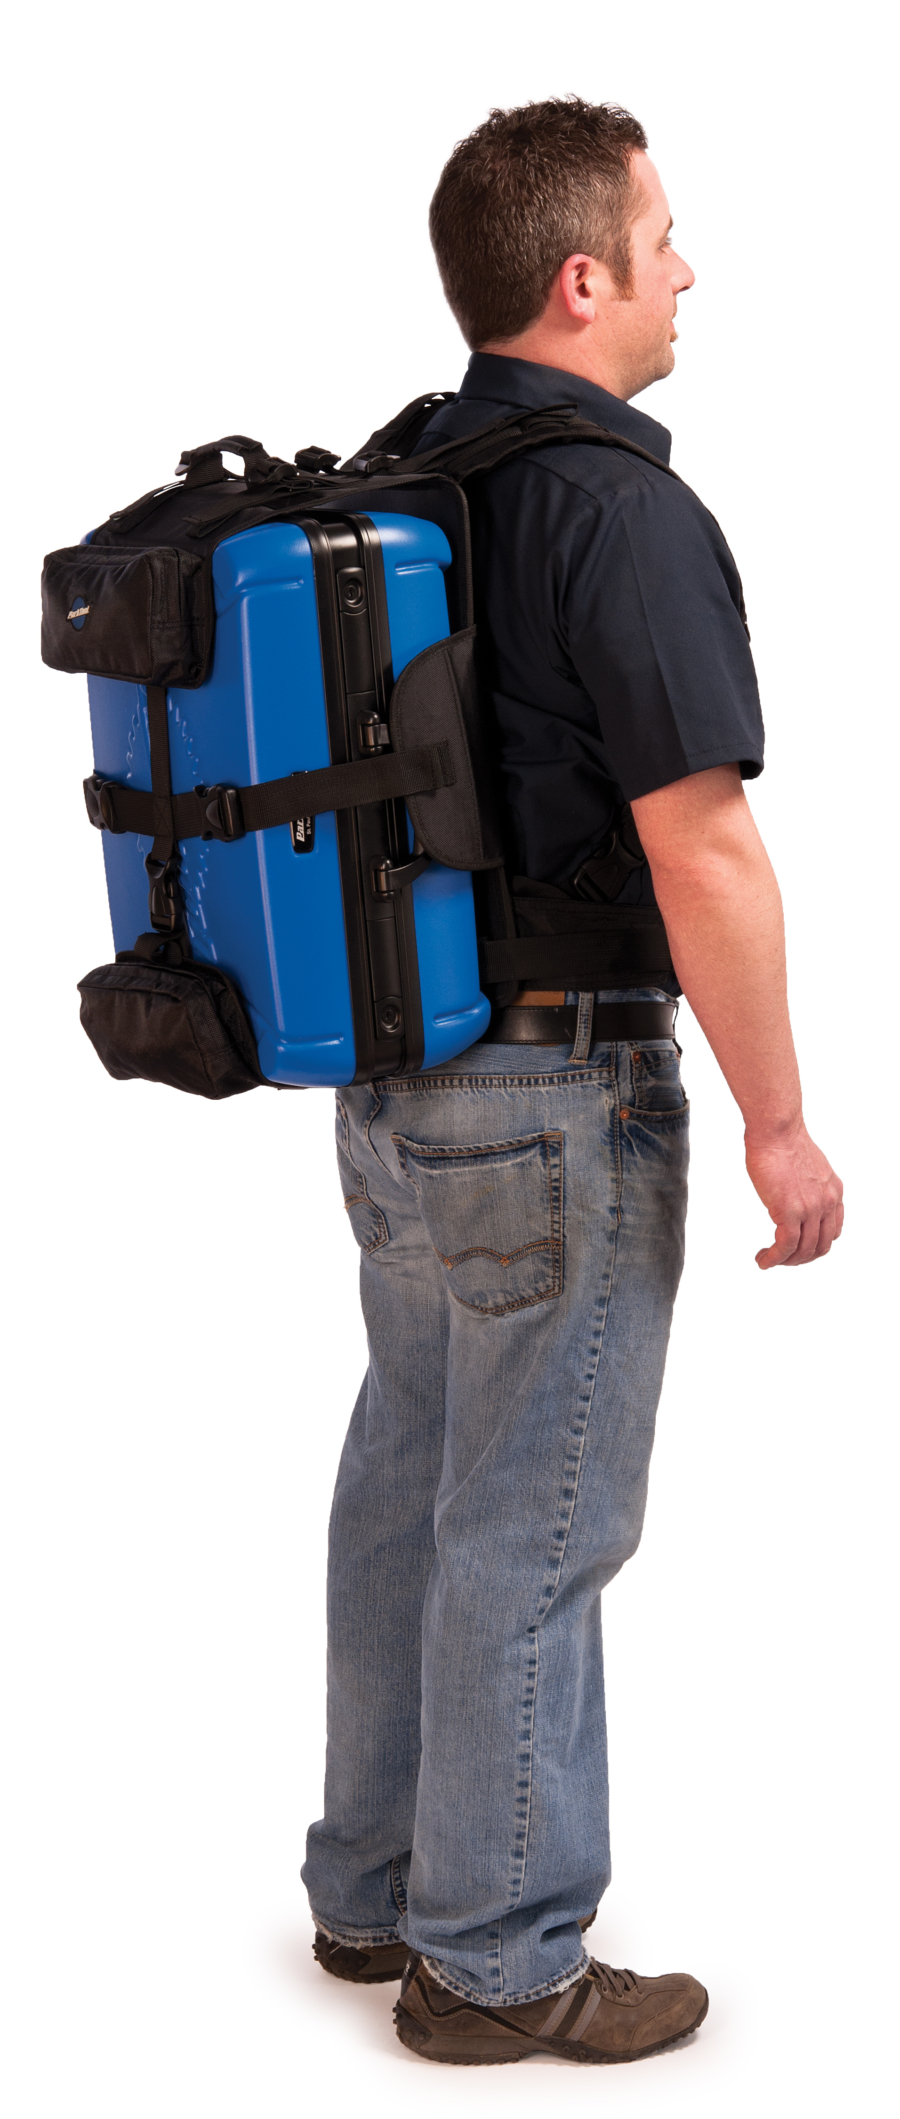 The Park Tool BXB-2 Backpack Harness for BX-2 on model, enlarged